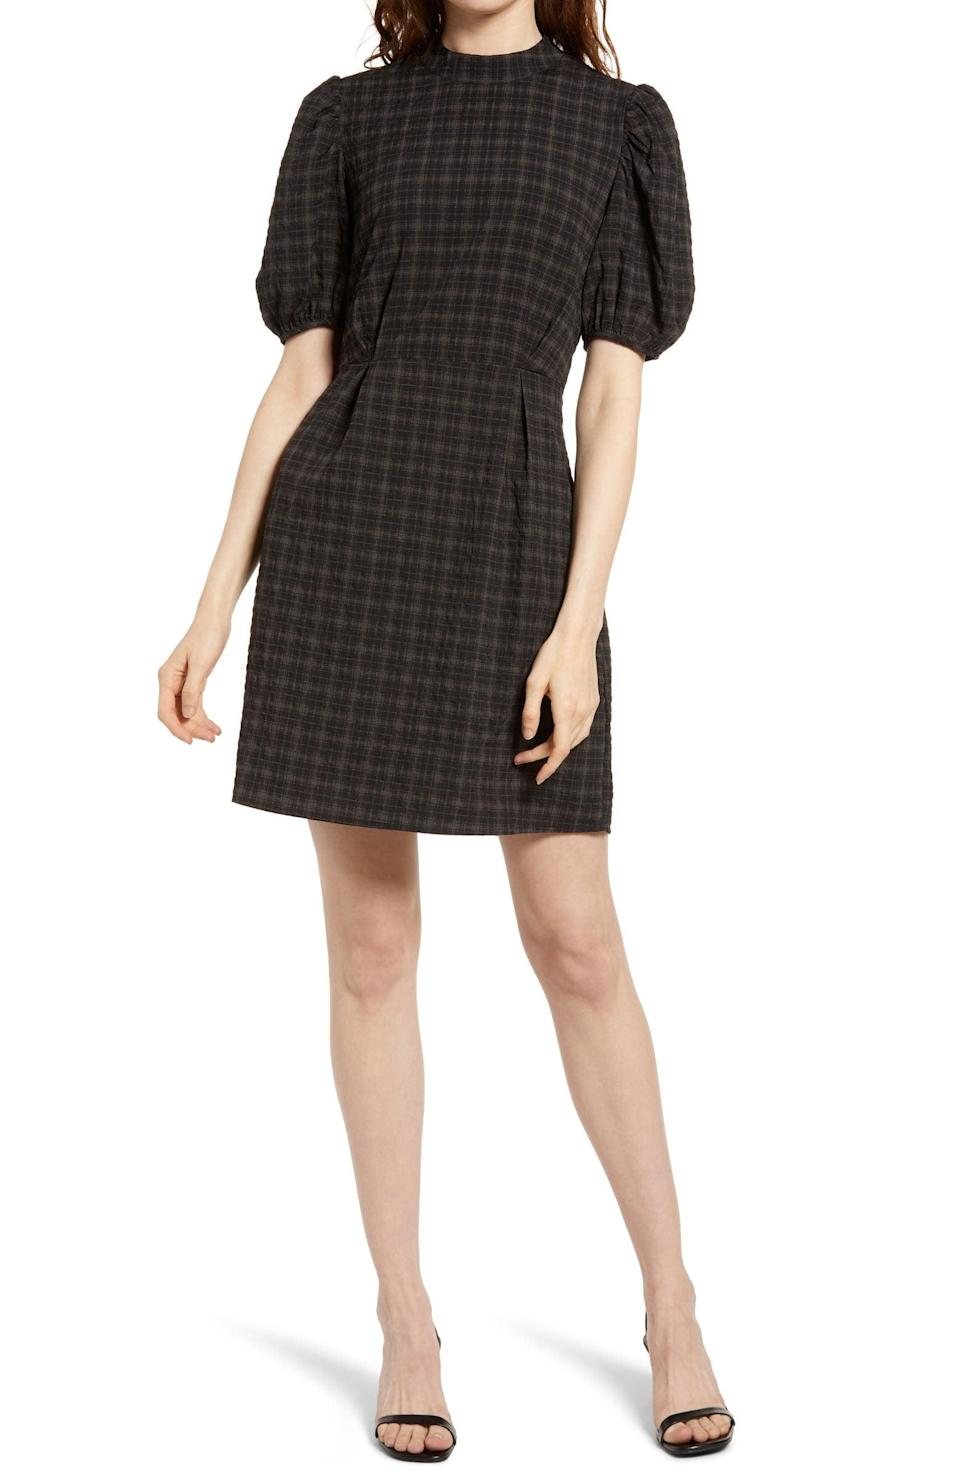 <p>Tap into the dramatic sleeve trend with this <span>Aware By Vero Moda Maddie Plaid Puff Sleeve Dress</span> ($41, originally $$75).</p>